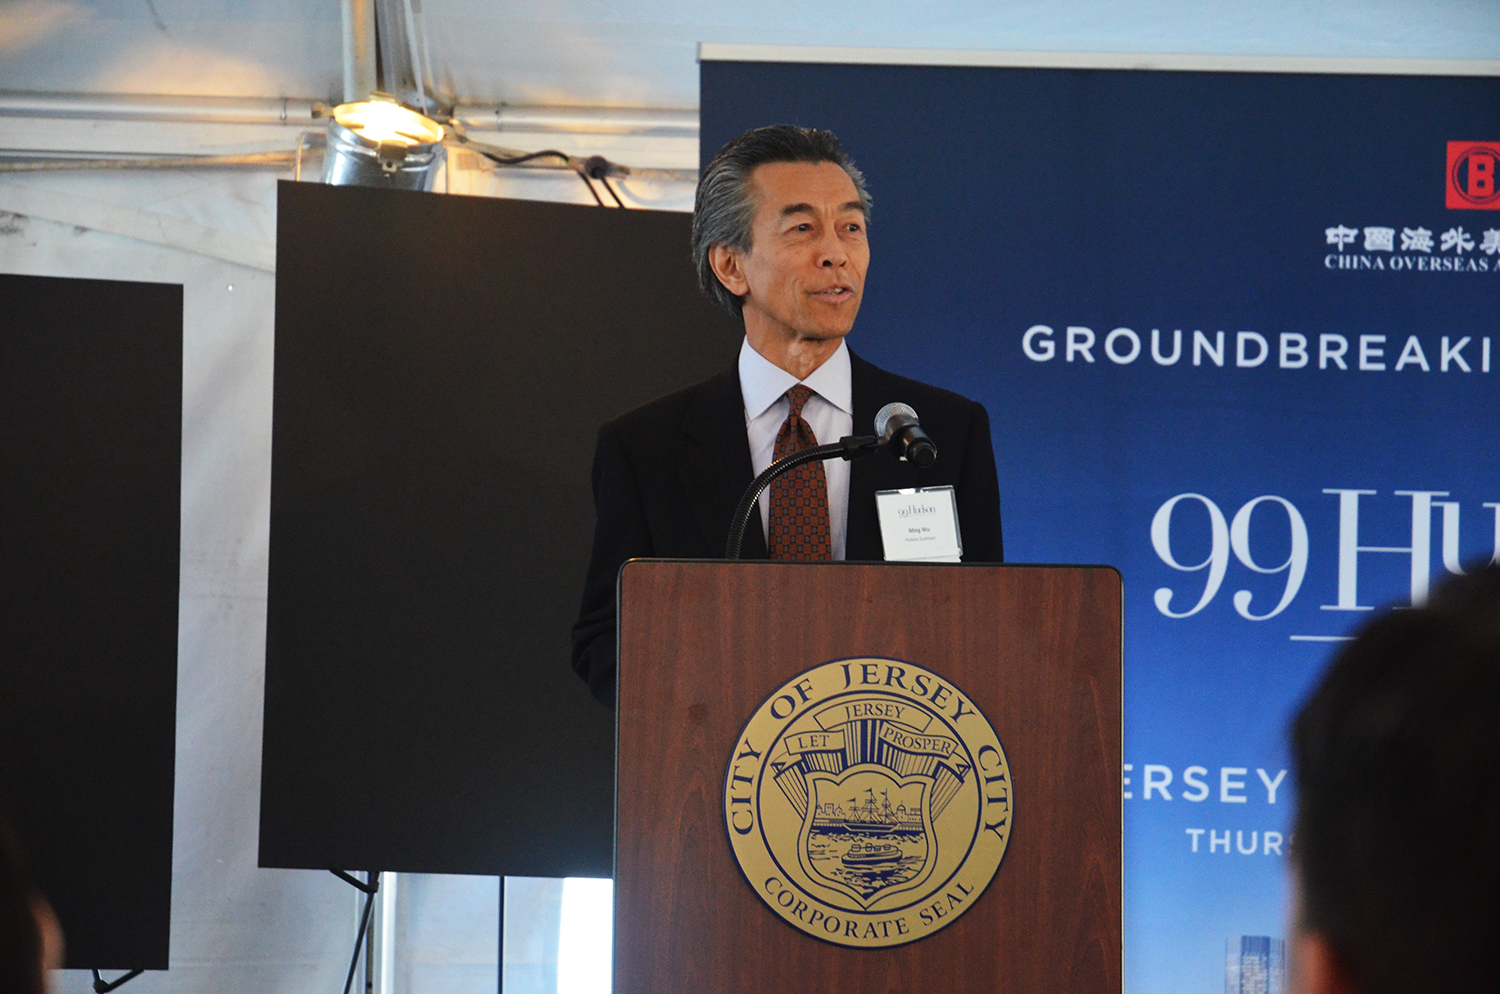 Architect Ming Wu speaks at the groundbreaking for 99 Hudson Street.